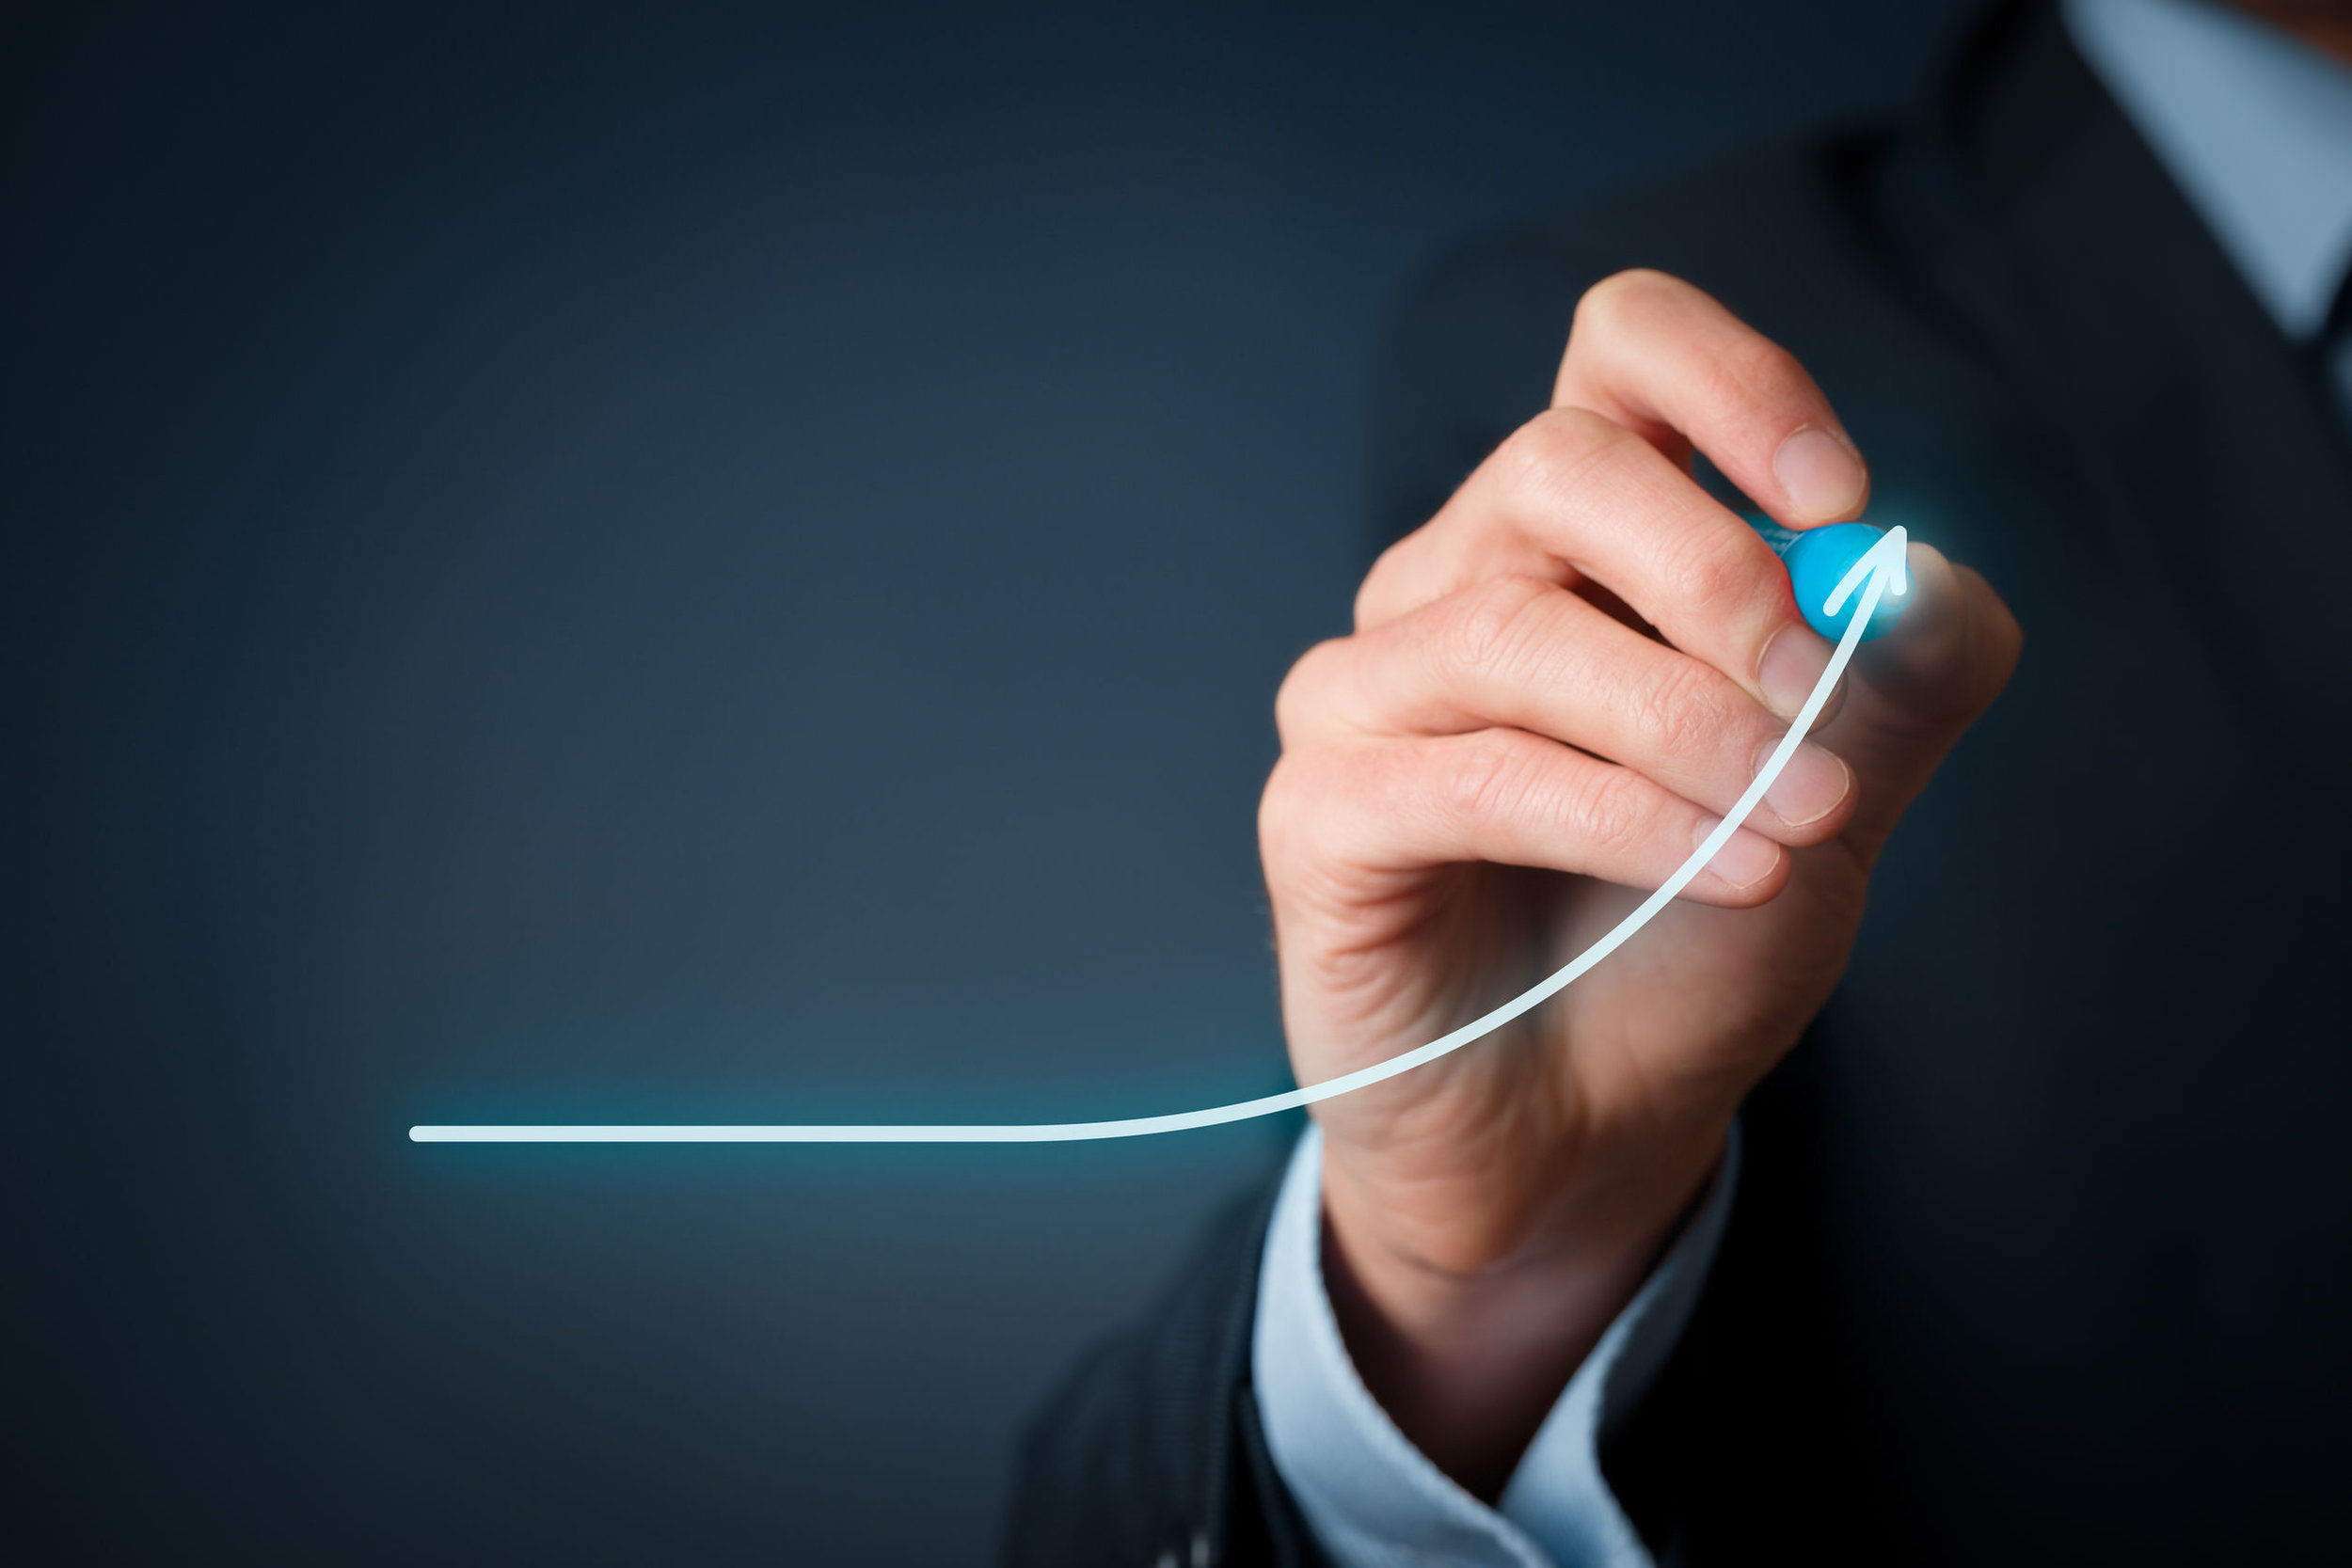 44632671 - development and growth concept. businessman plan growth and increase of positive indicators in his business.